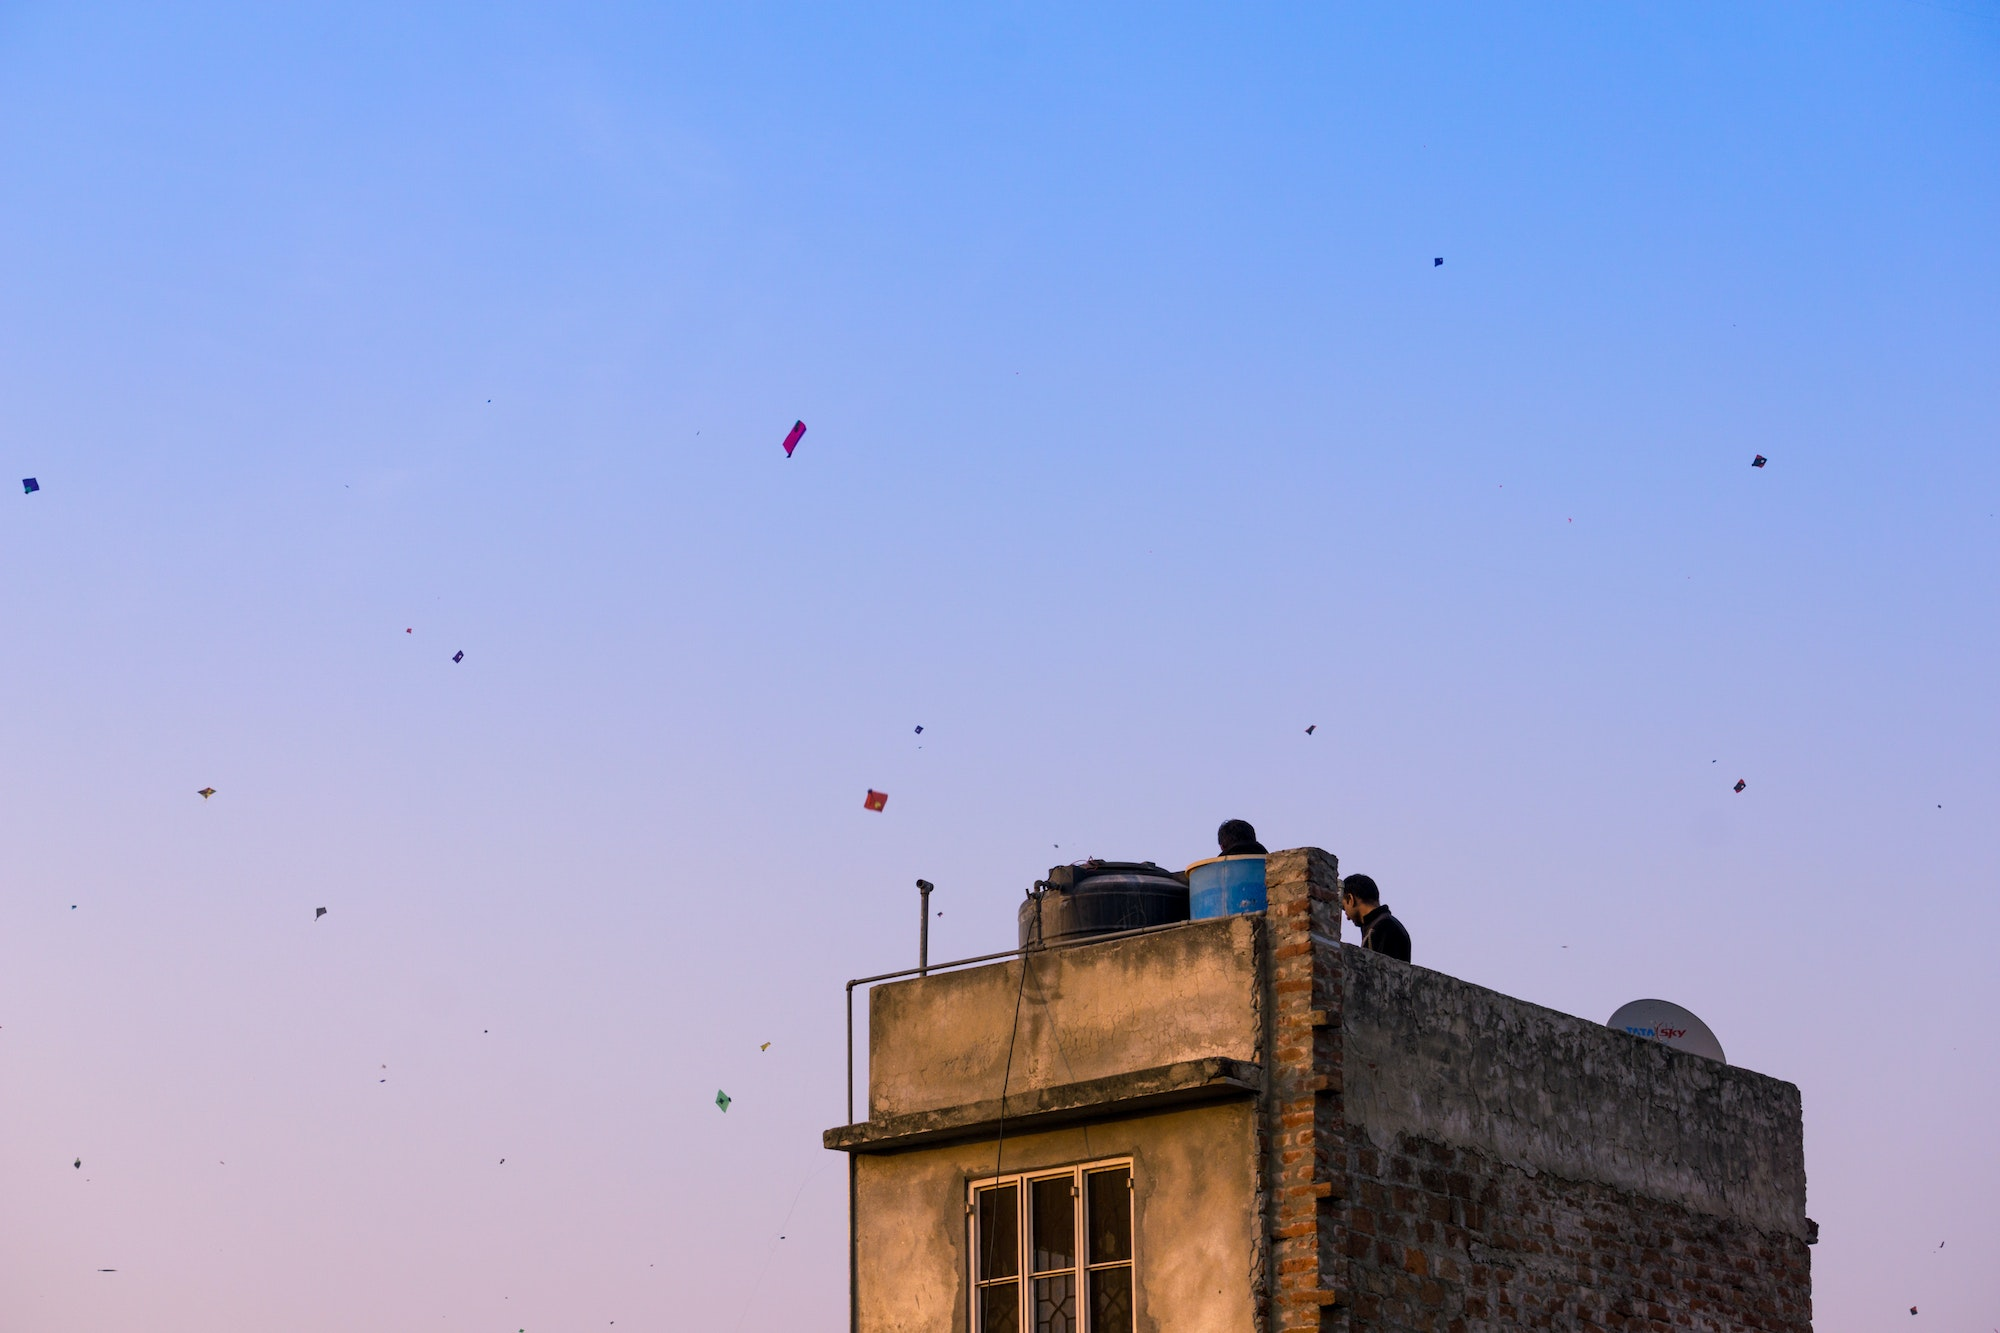 Across India, kite flying is a popular way to celebrate Independence Day.